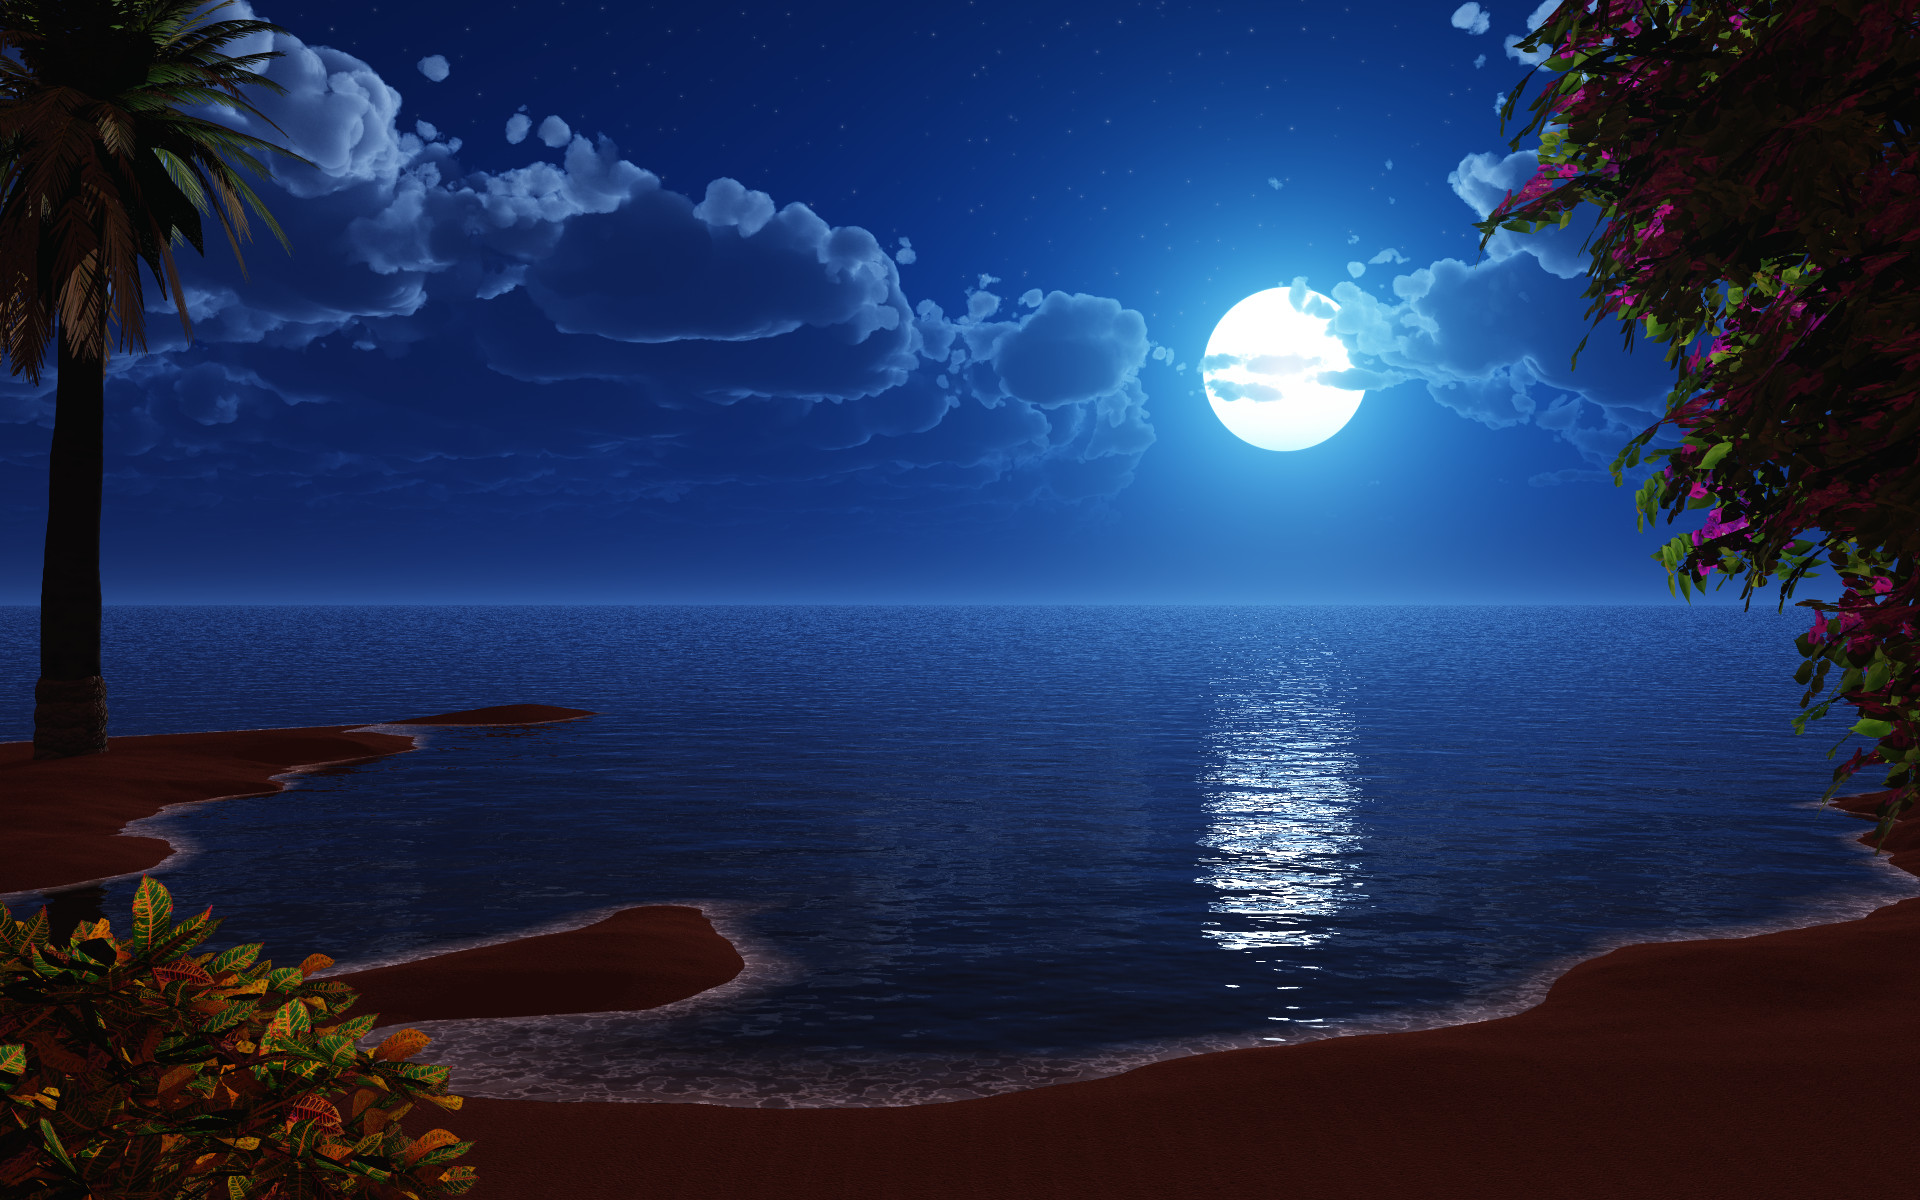 Moon HD Wallpapers  Backgrounds  Wallpaper  1920x1200